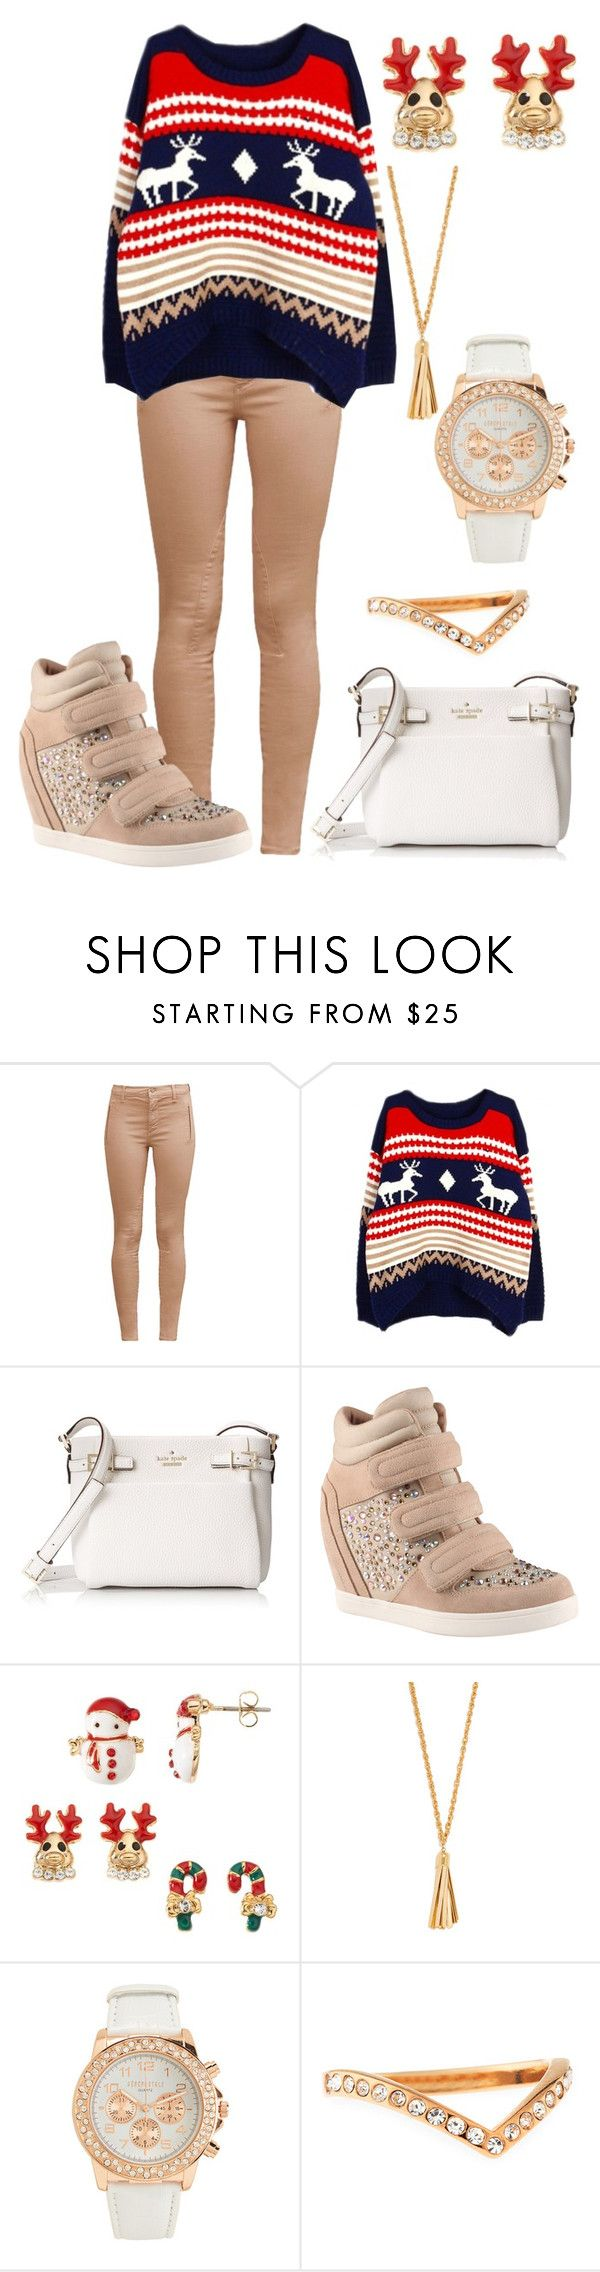 """""""Sans titre #4684"""" by kina-ashley ❤ liked on Polyvore featuring French Connection, Kate Spade, ALDO, BaubleBar, Aéropostale and Vita Fede"""